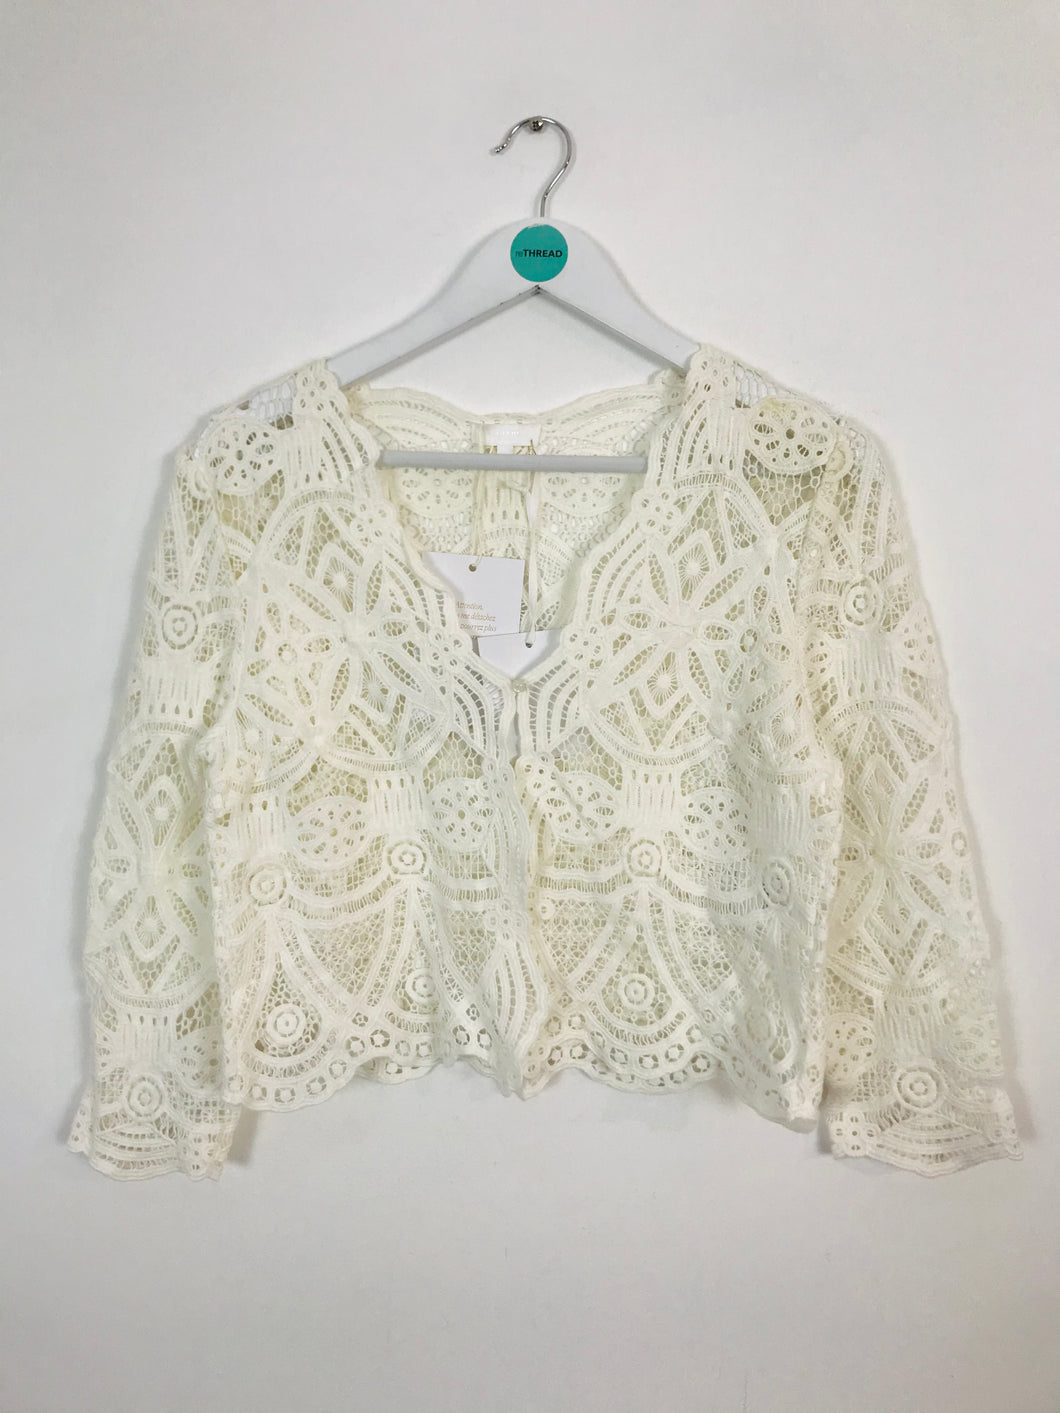 Sezane Women's Cropped Lace Jacket Top With Tags | M UK10-12 | White